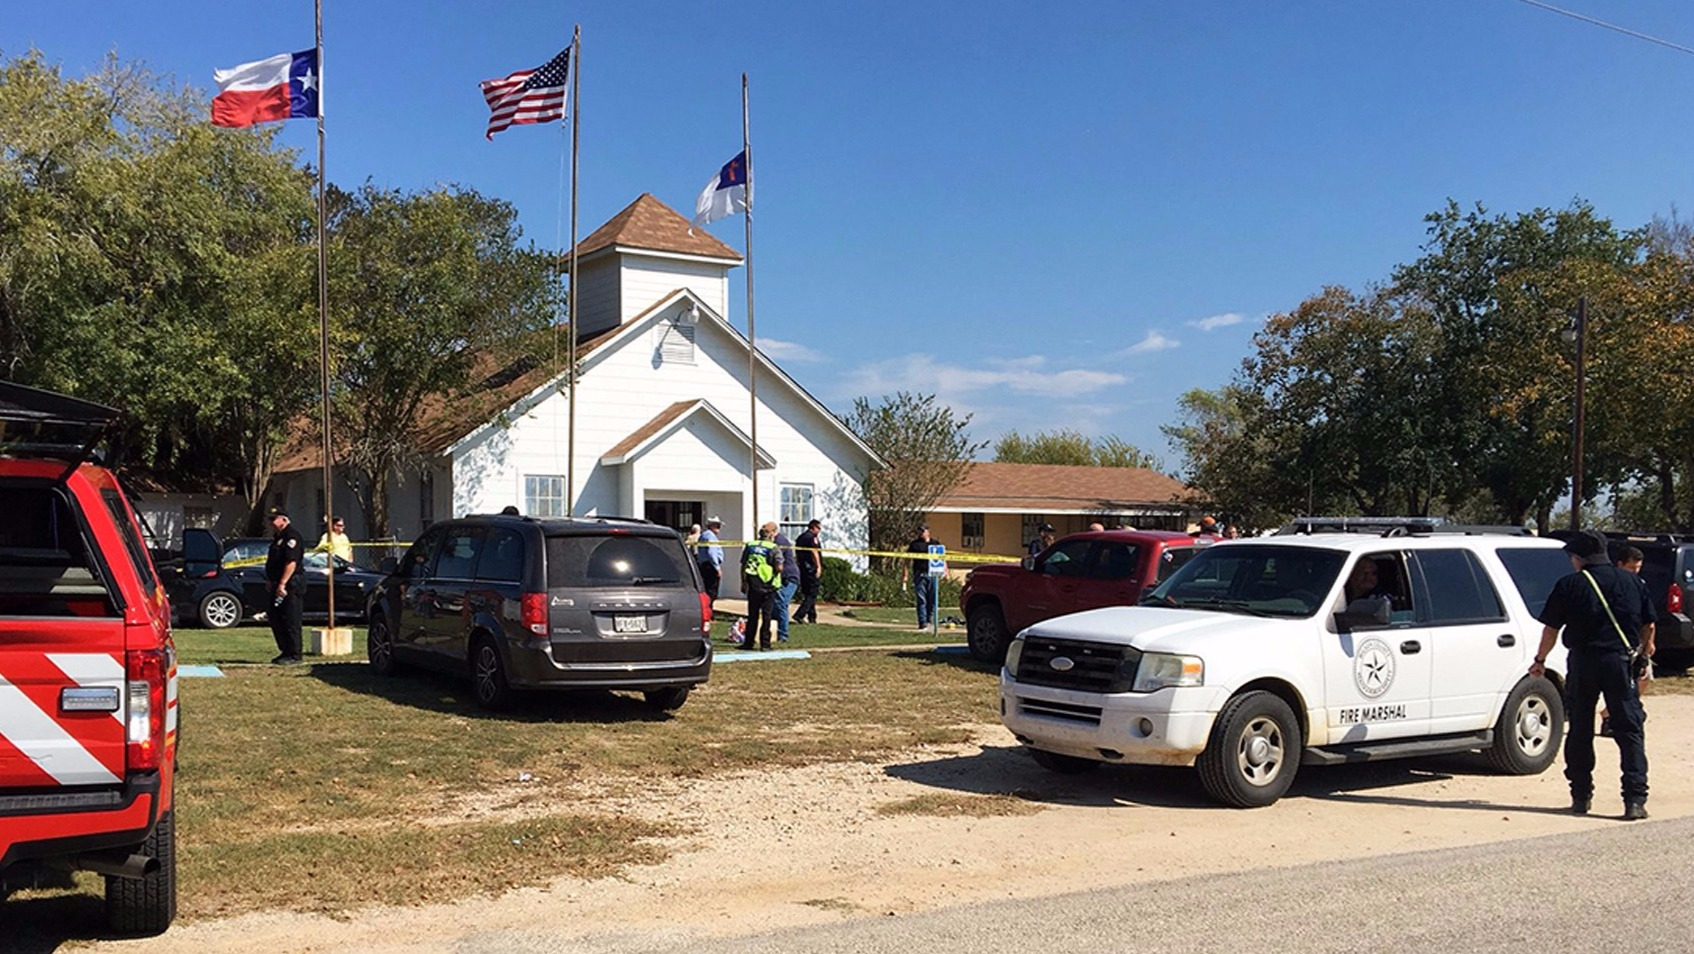 Gunman opens fire at Texas church, killing at least 25